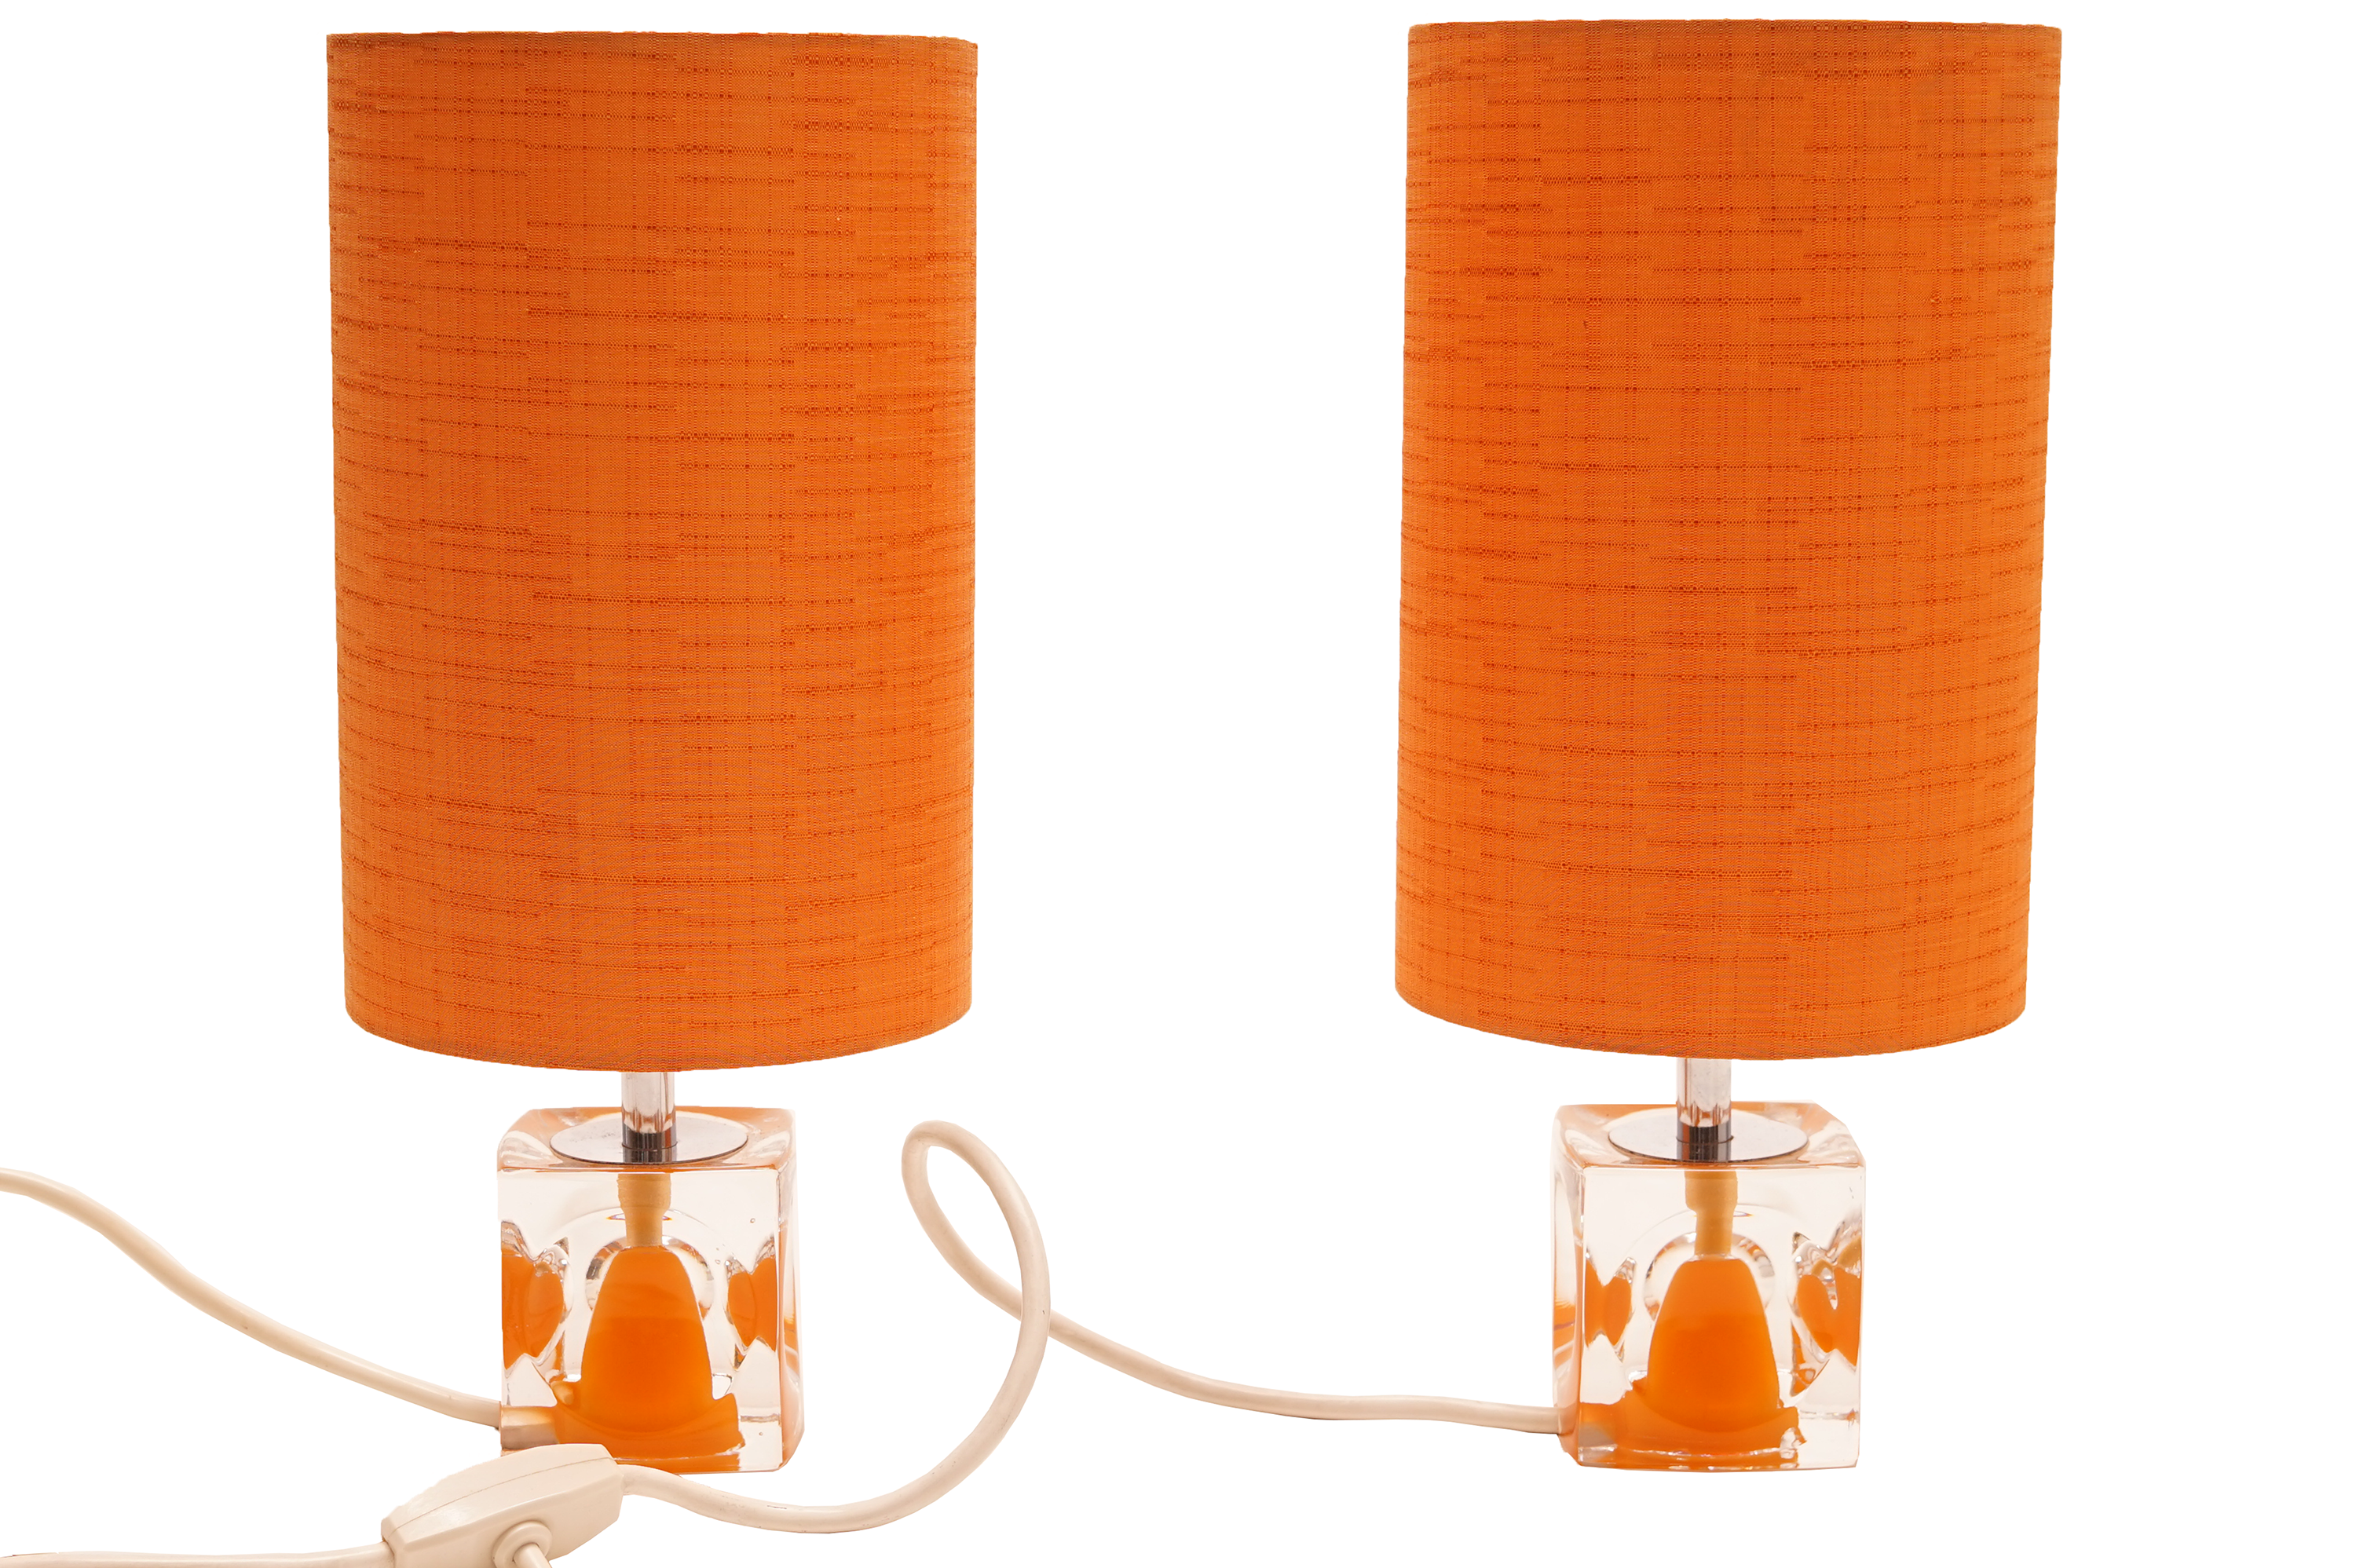 Space Age Table Lamps